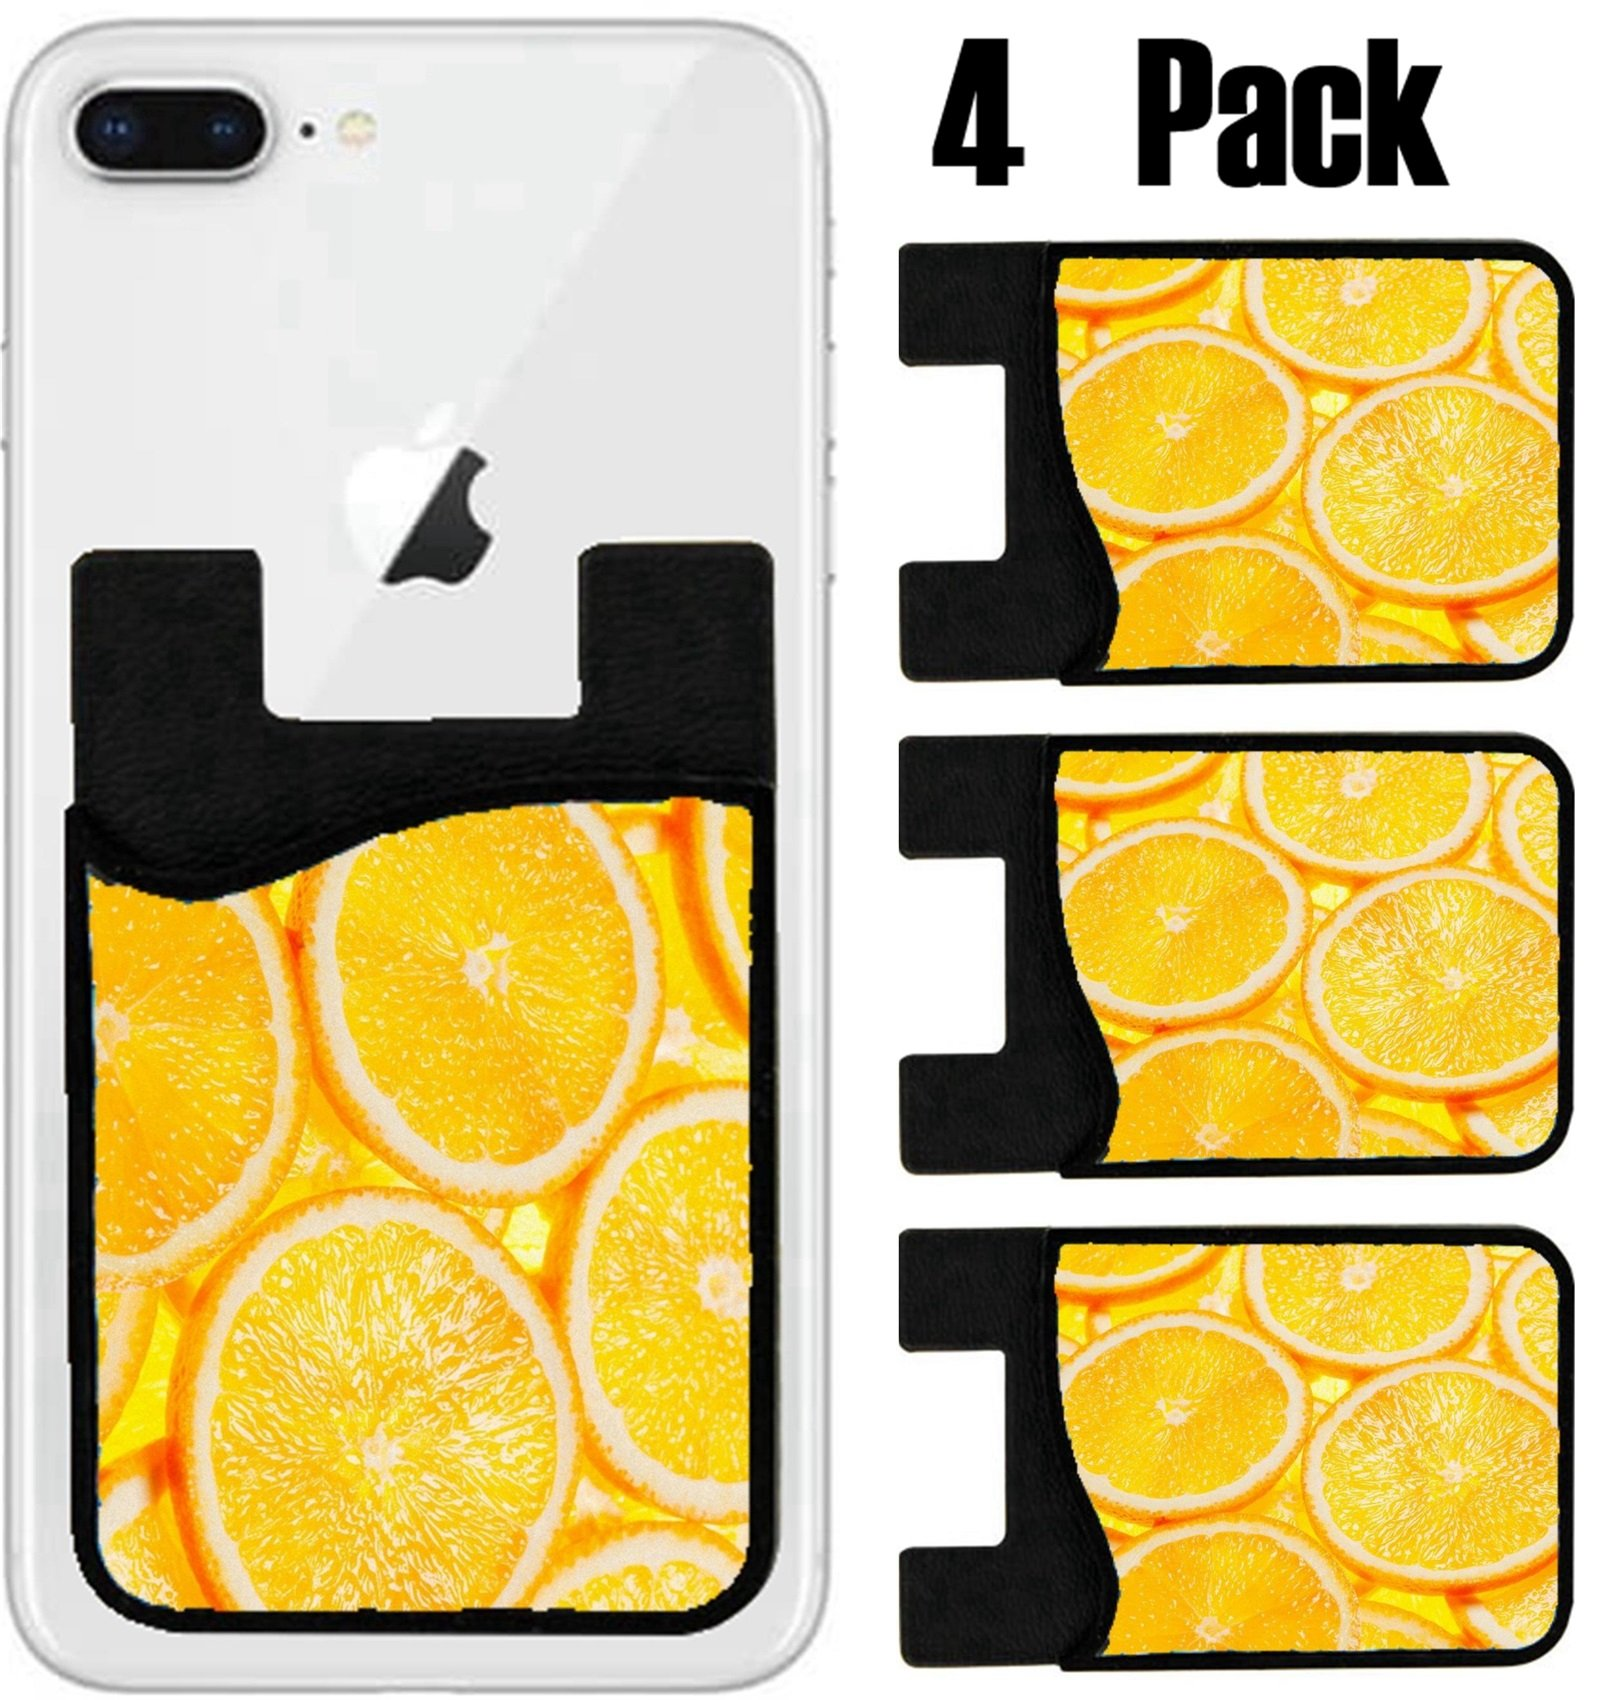 MSD Phone Card holder, sleeve/wallet for iPhone Samsung Android and all smartphones with removable microfiber screen cleaner Silicone card Caddy(4 Pack) IMAGE ID 35915491 Colorful orange fruit slices